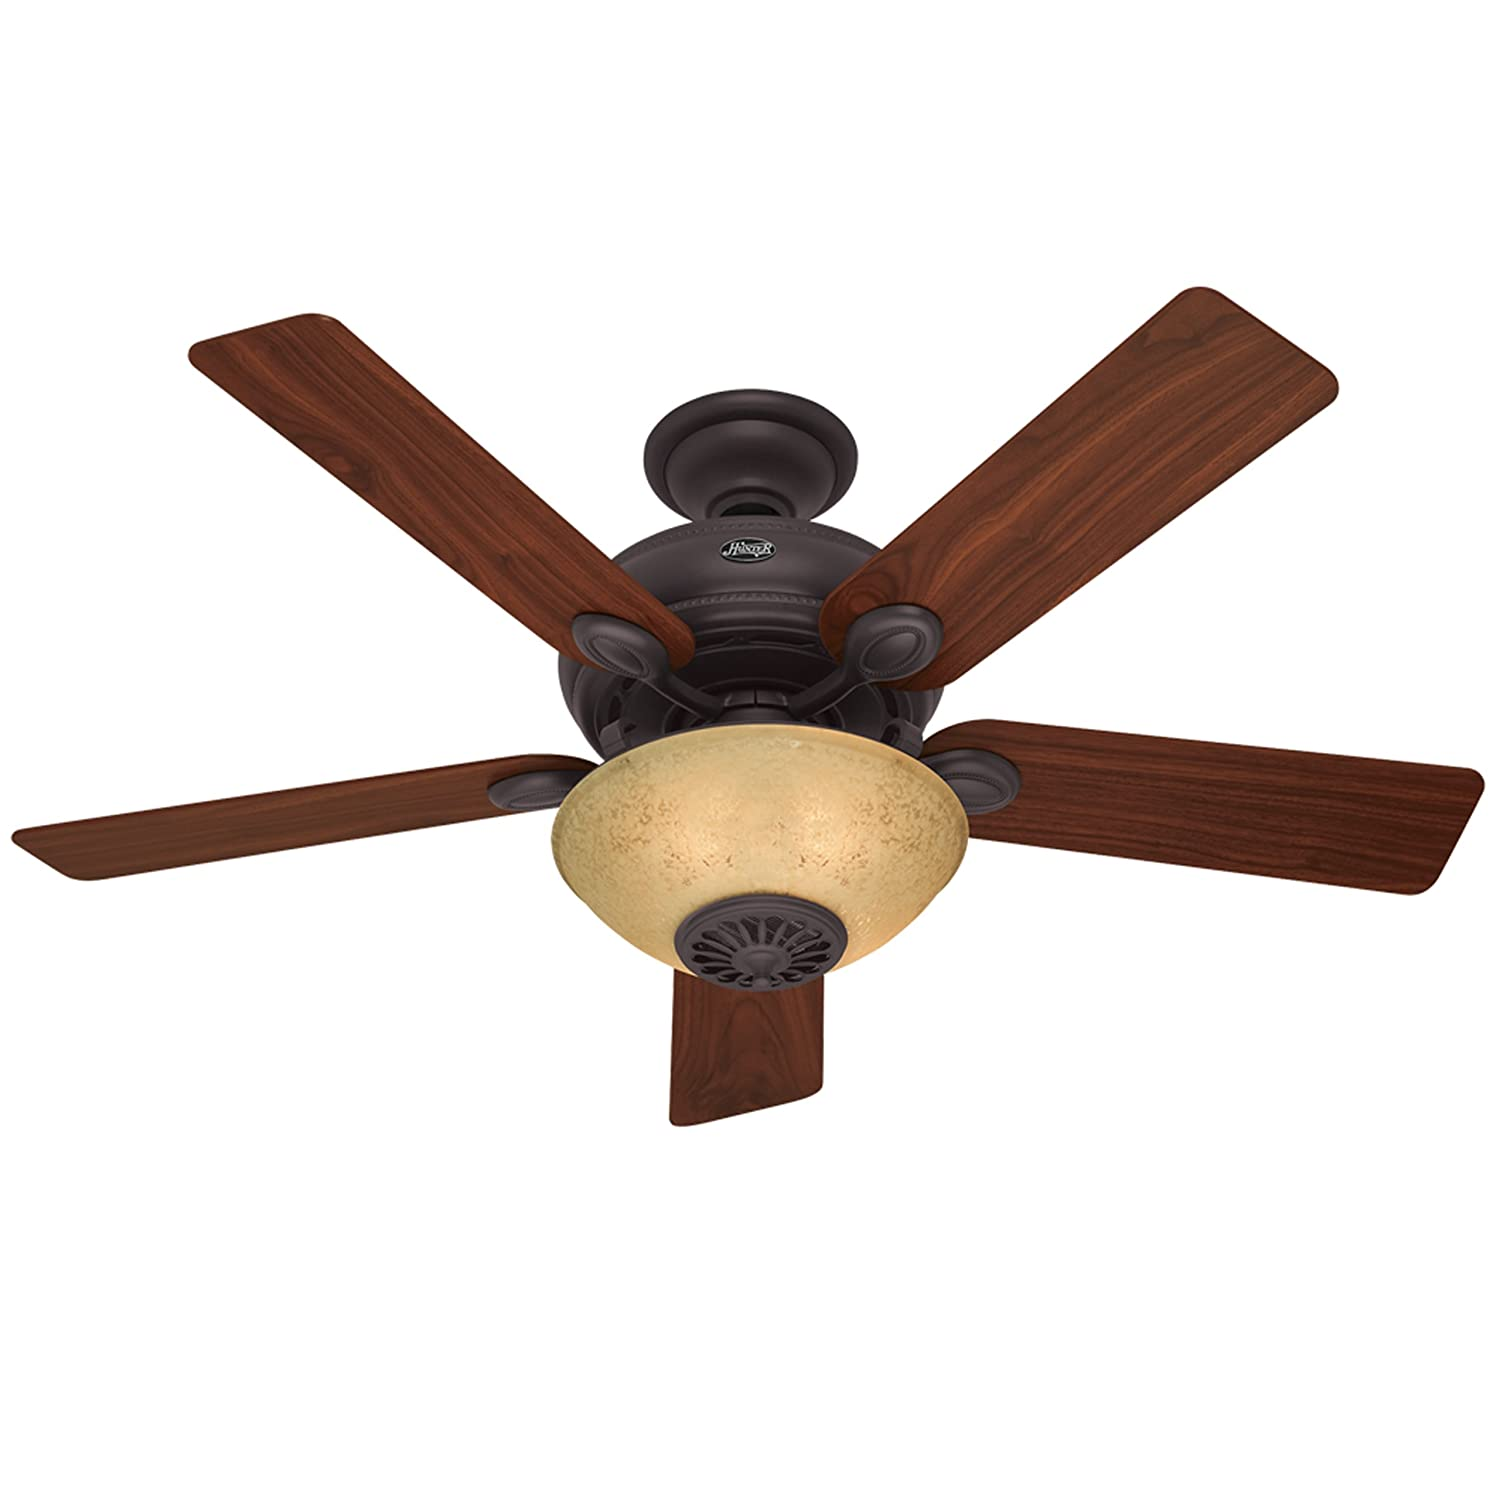 solution fan ca america panasonic ceiling canada quiet fv cfm whisperceiling north spot ventilation whisperceilingtm